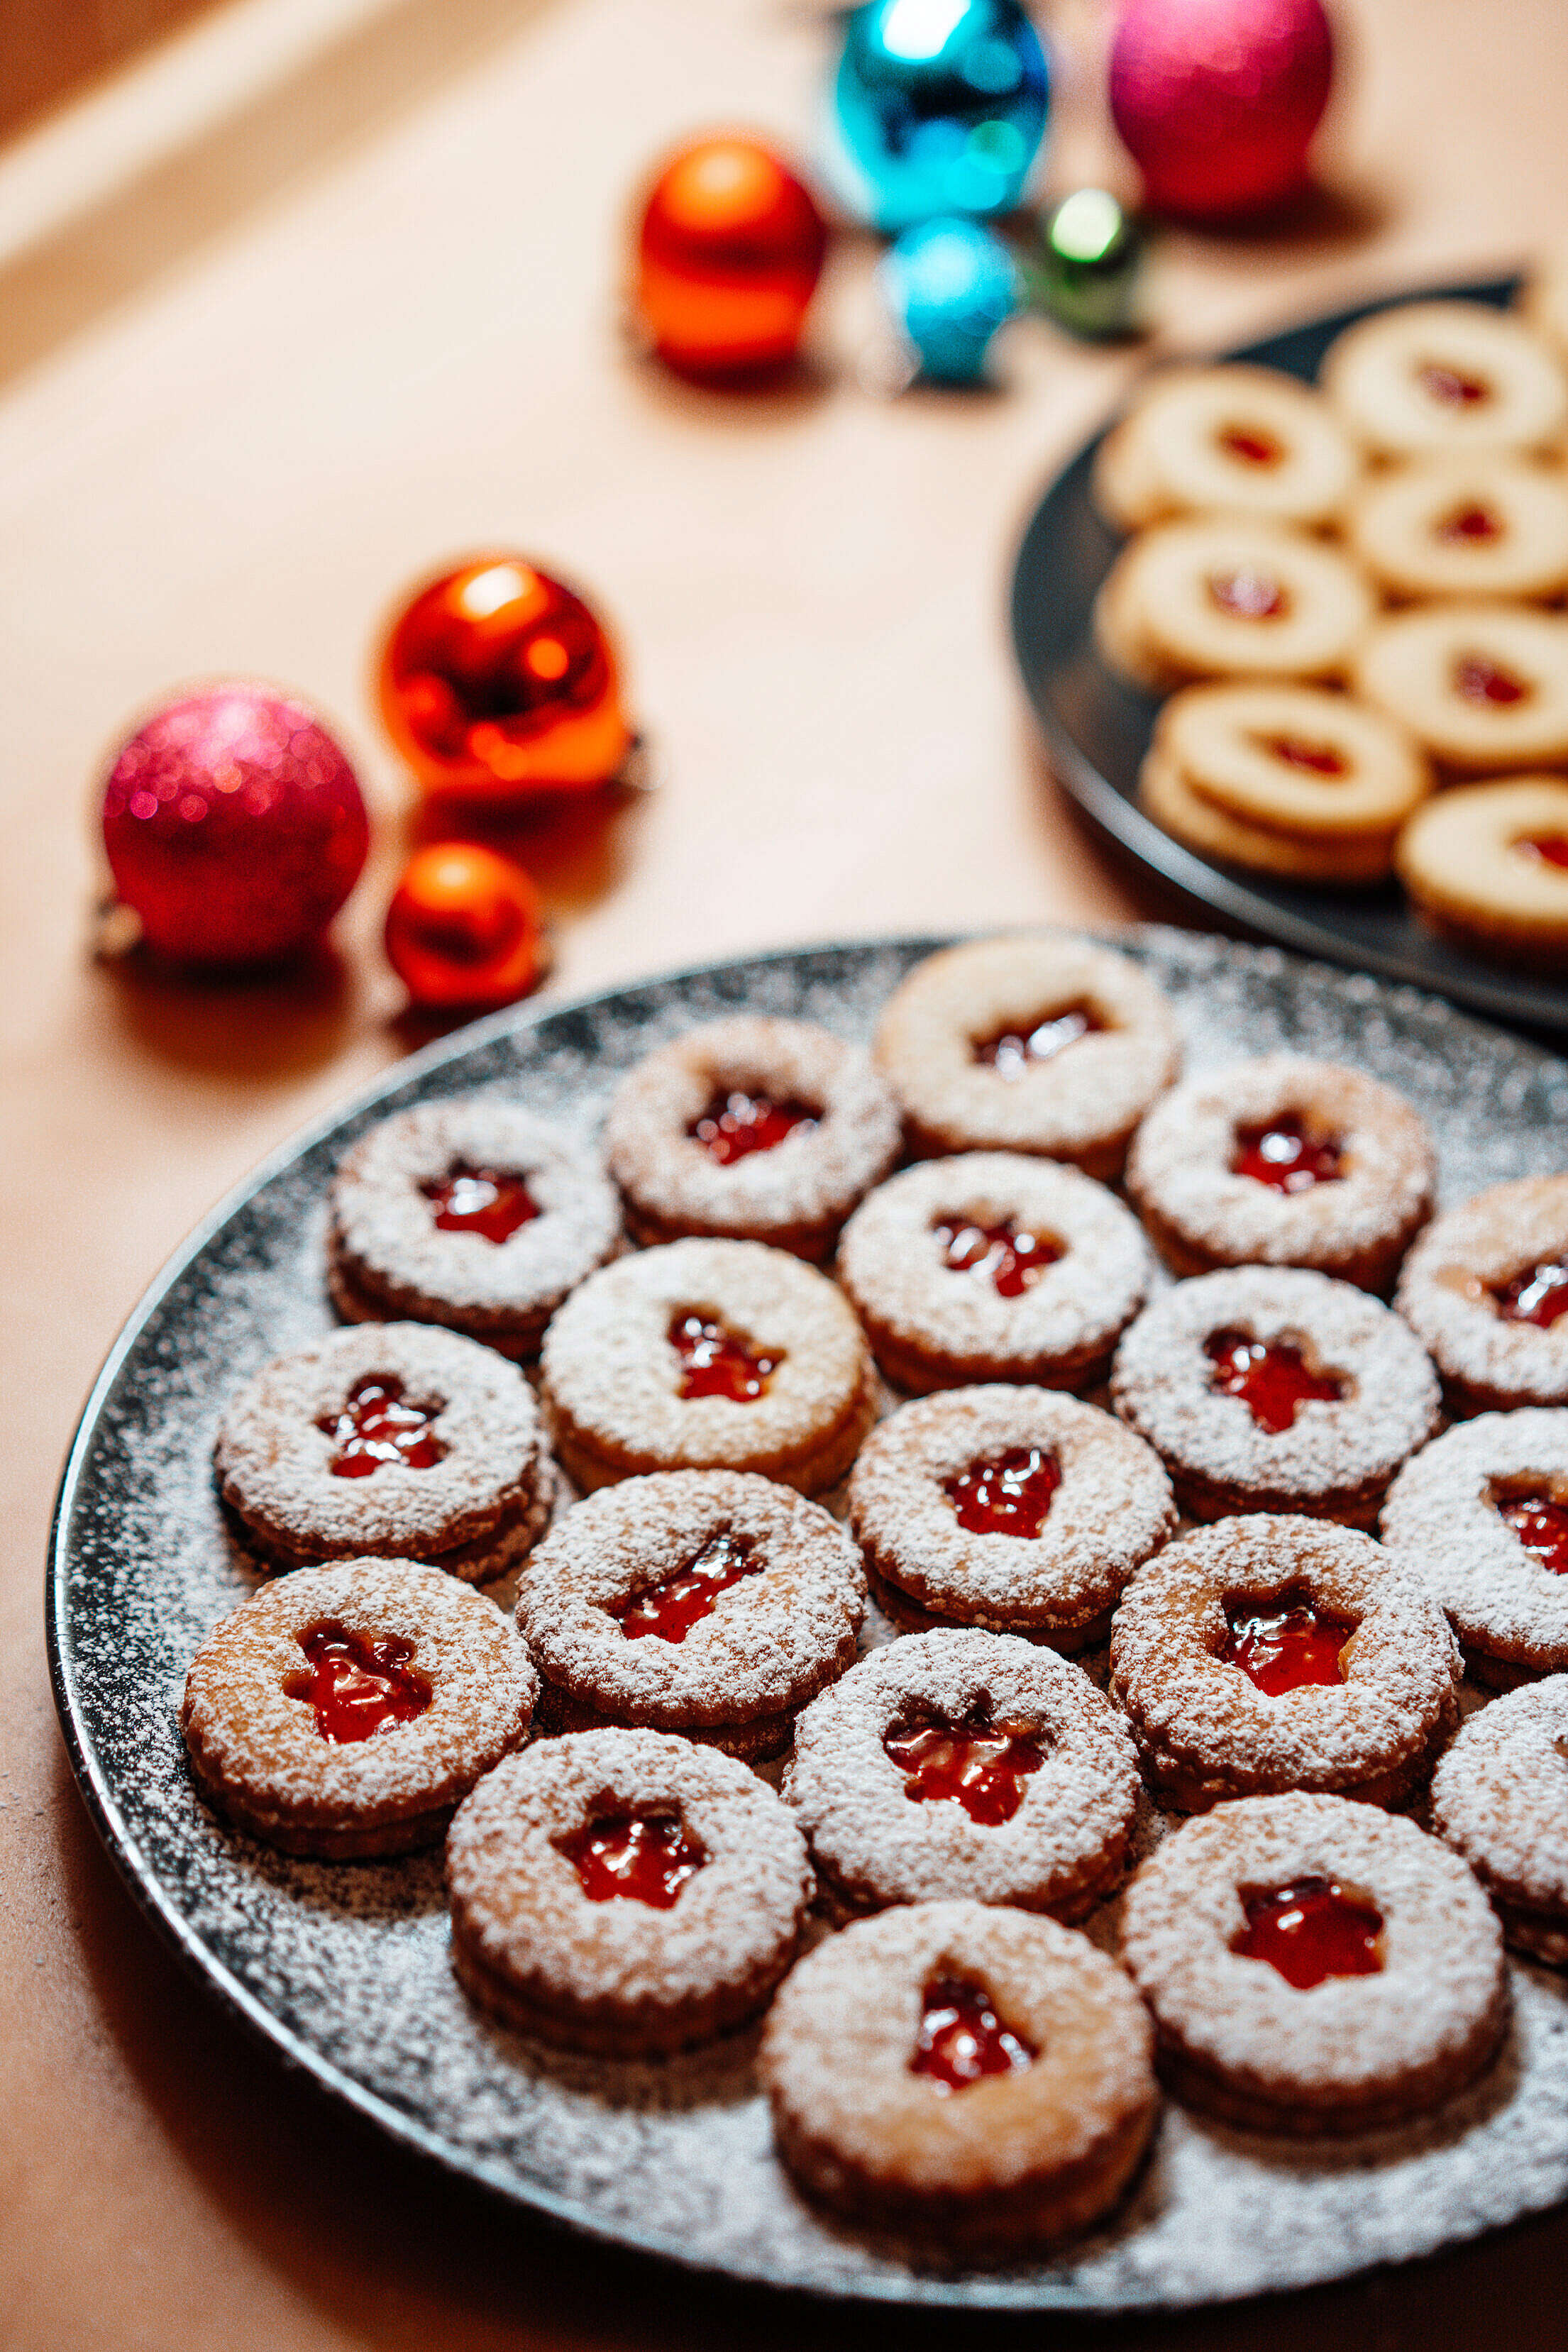 Christmas Linzer Sweets Free Stock Photo